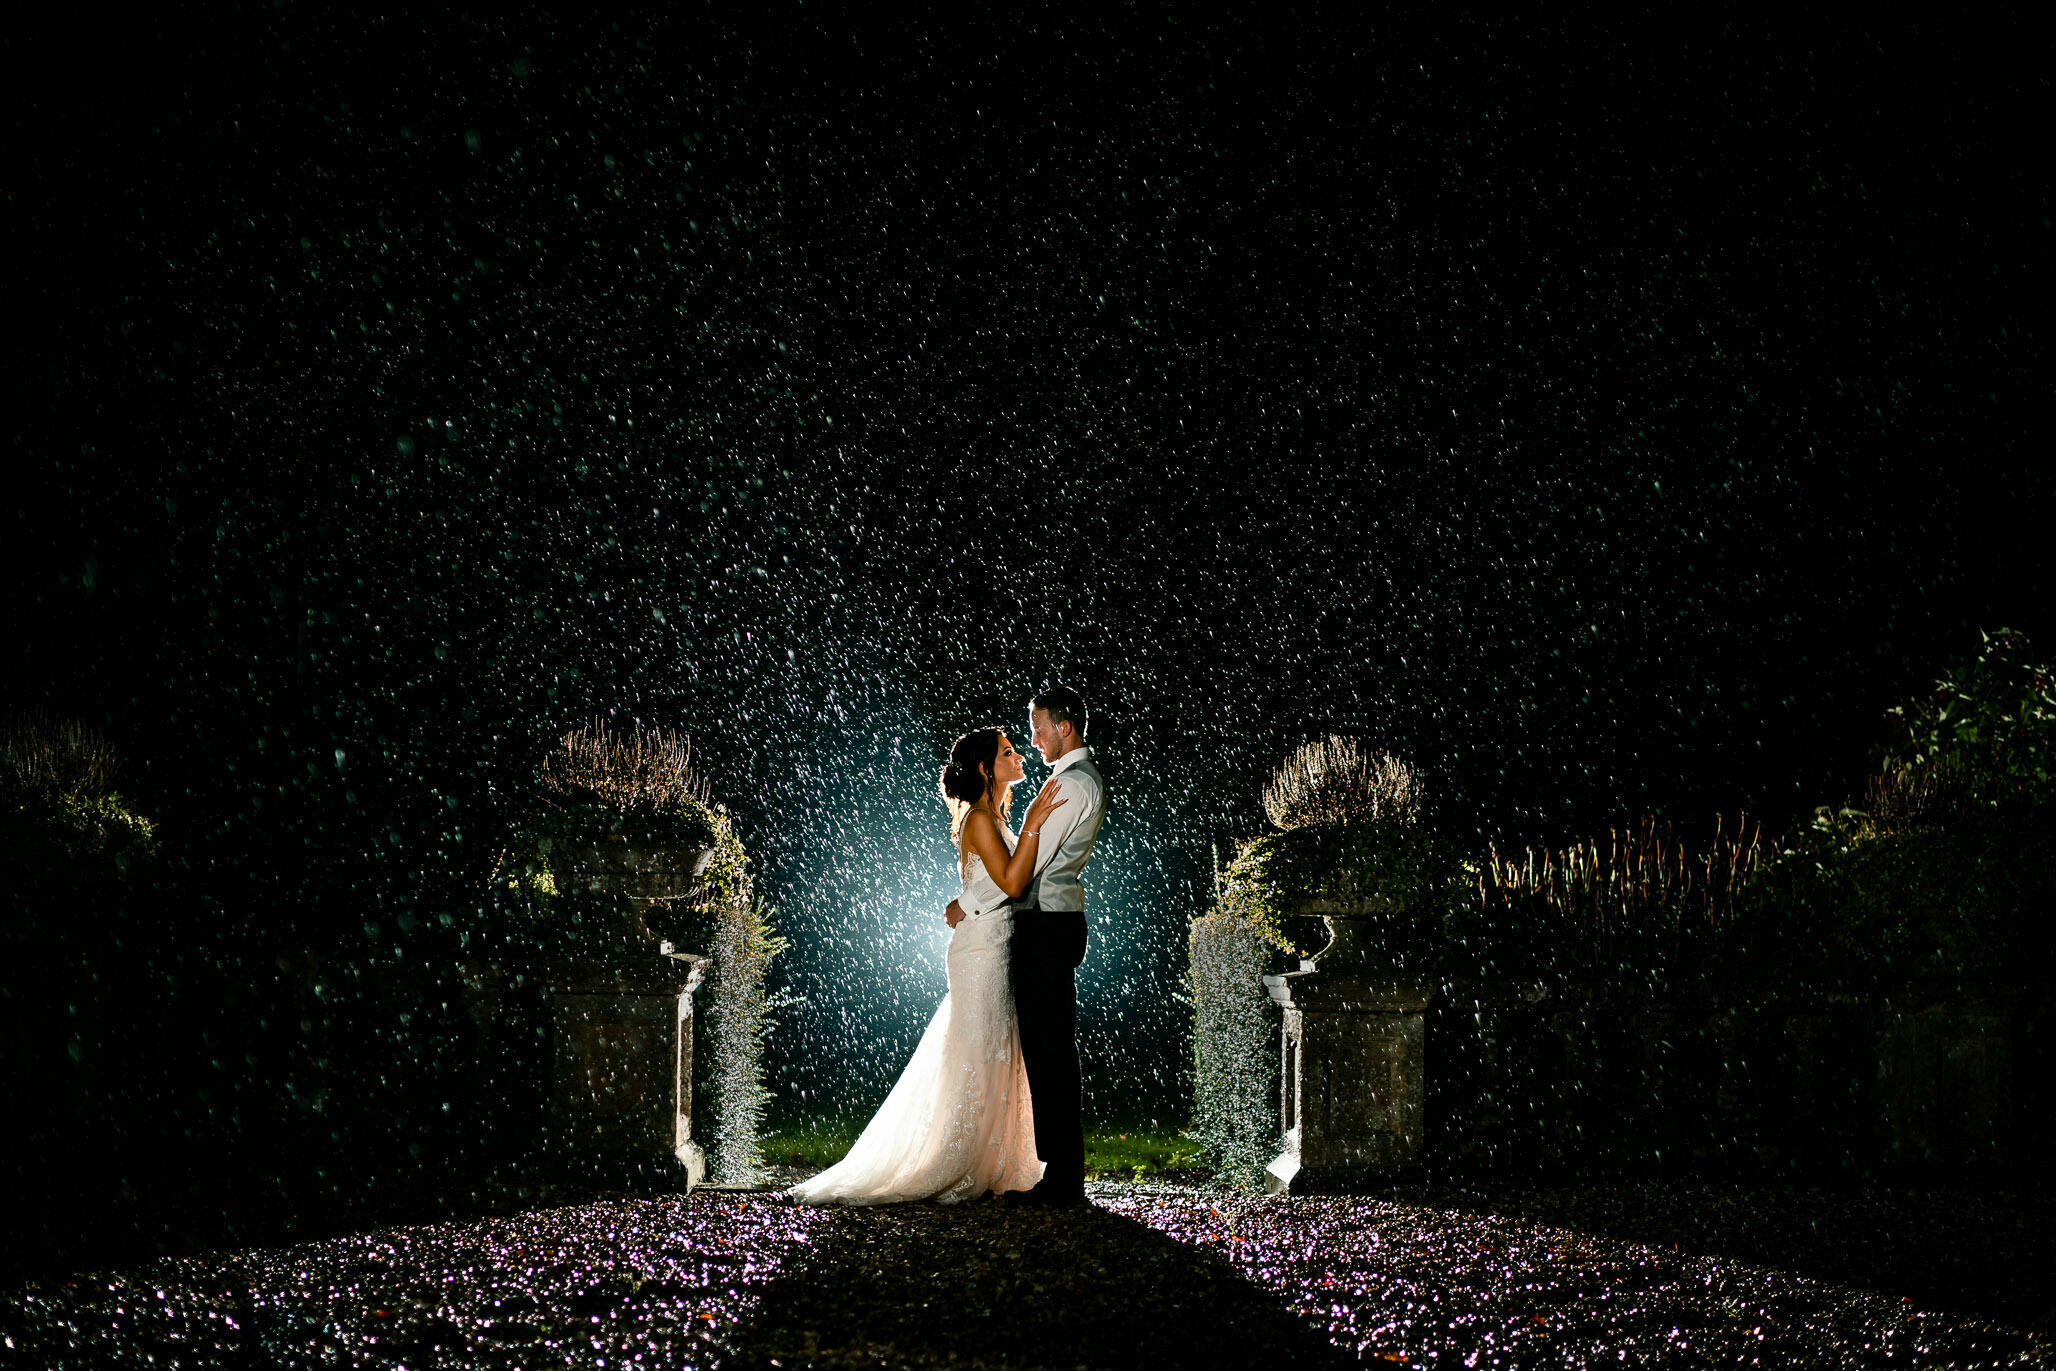 Weddings at bredenbury court